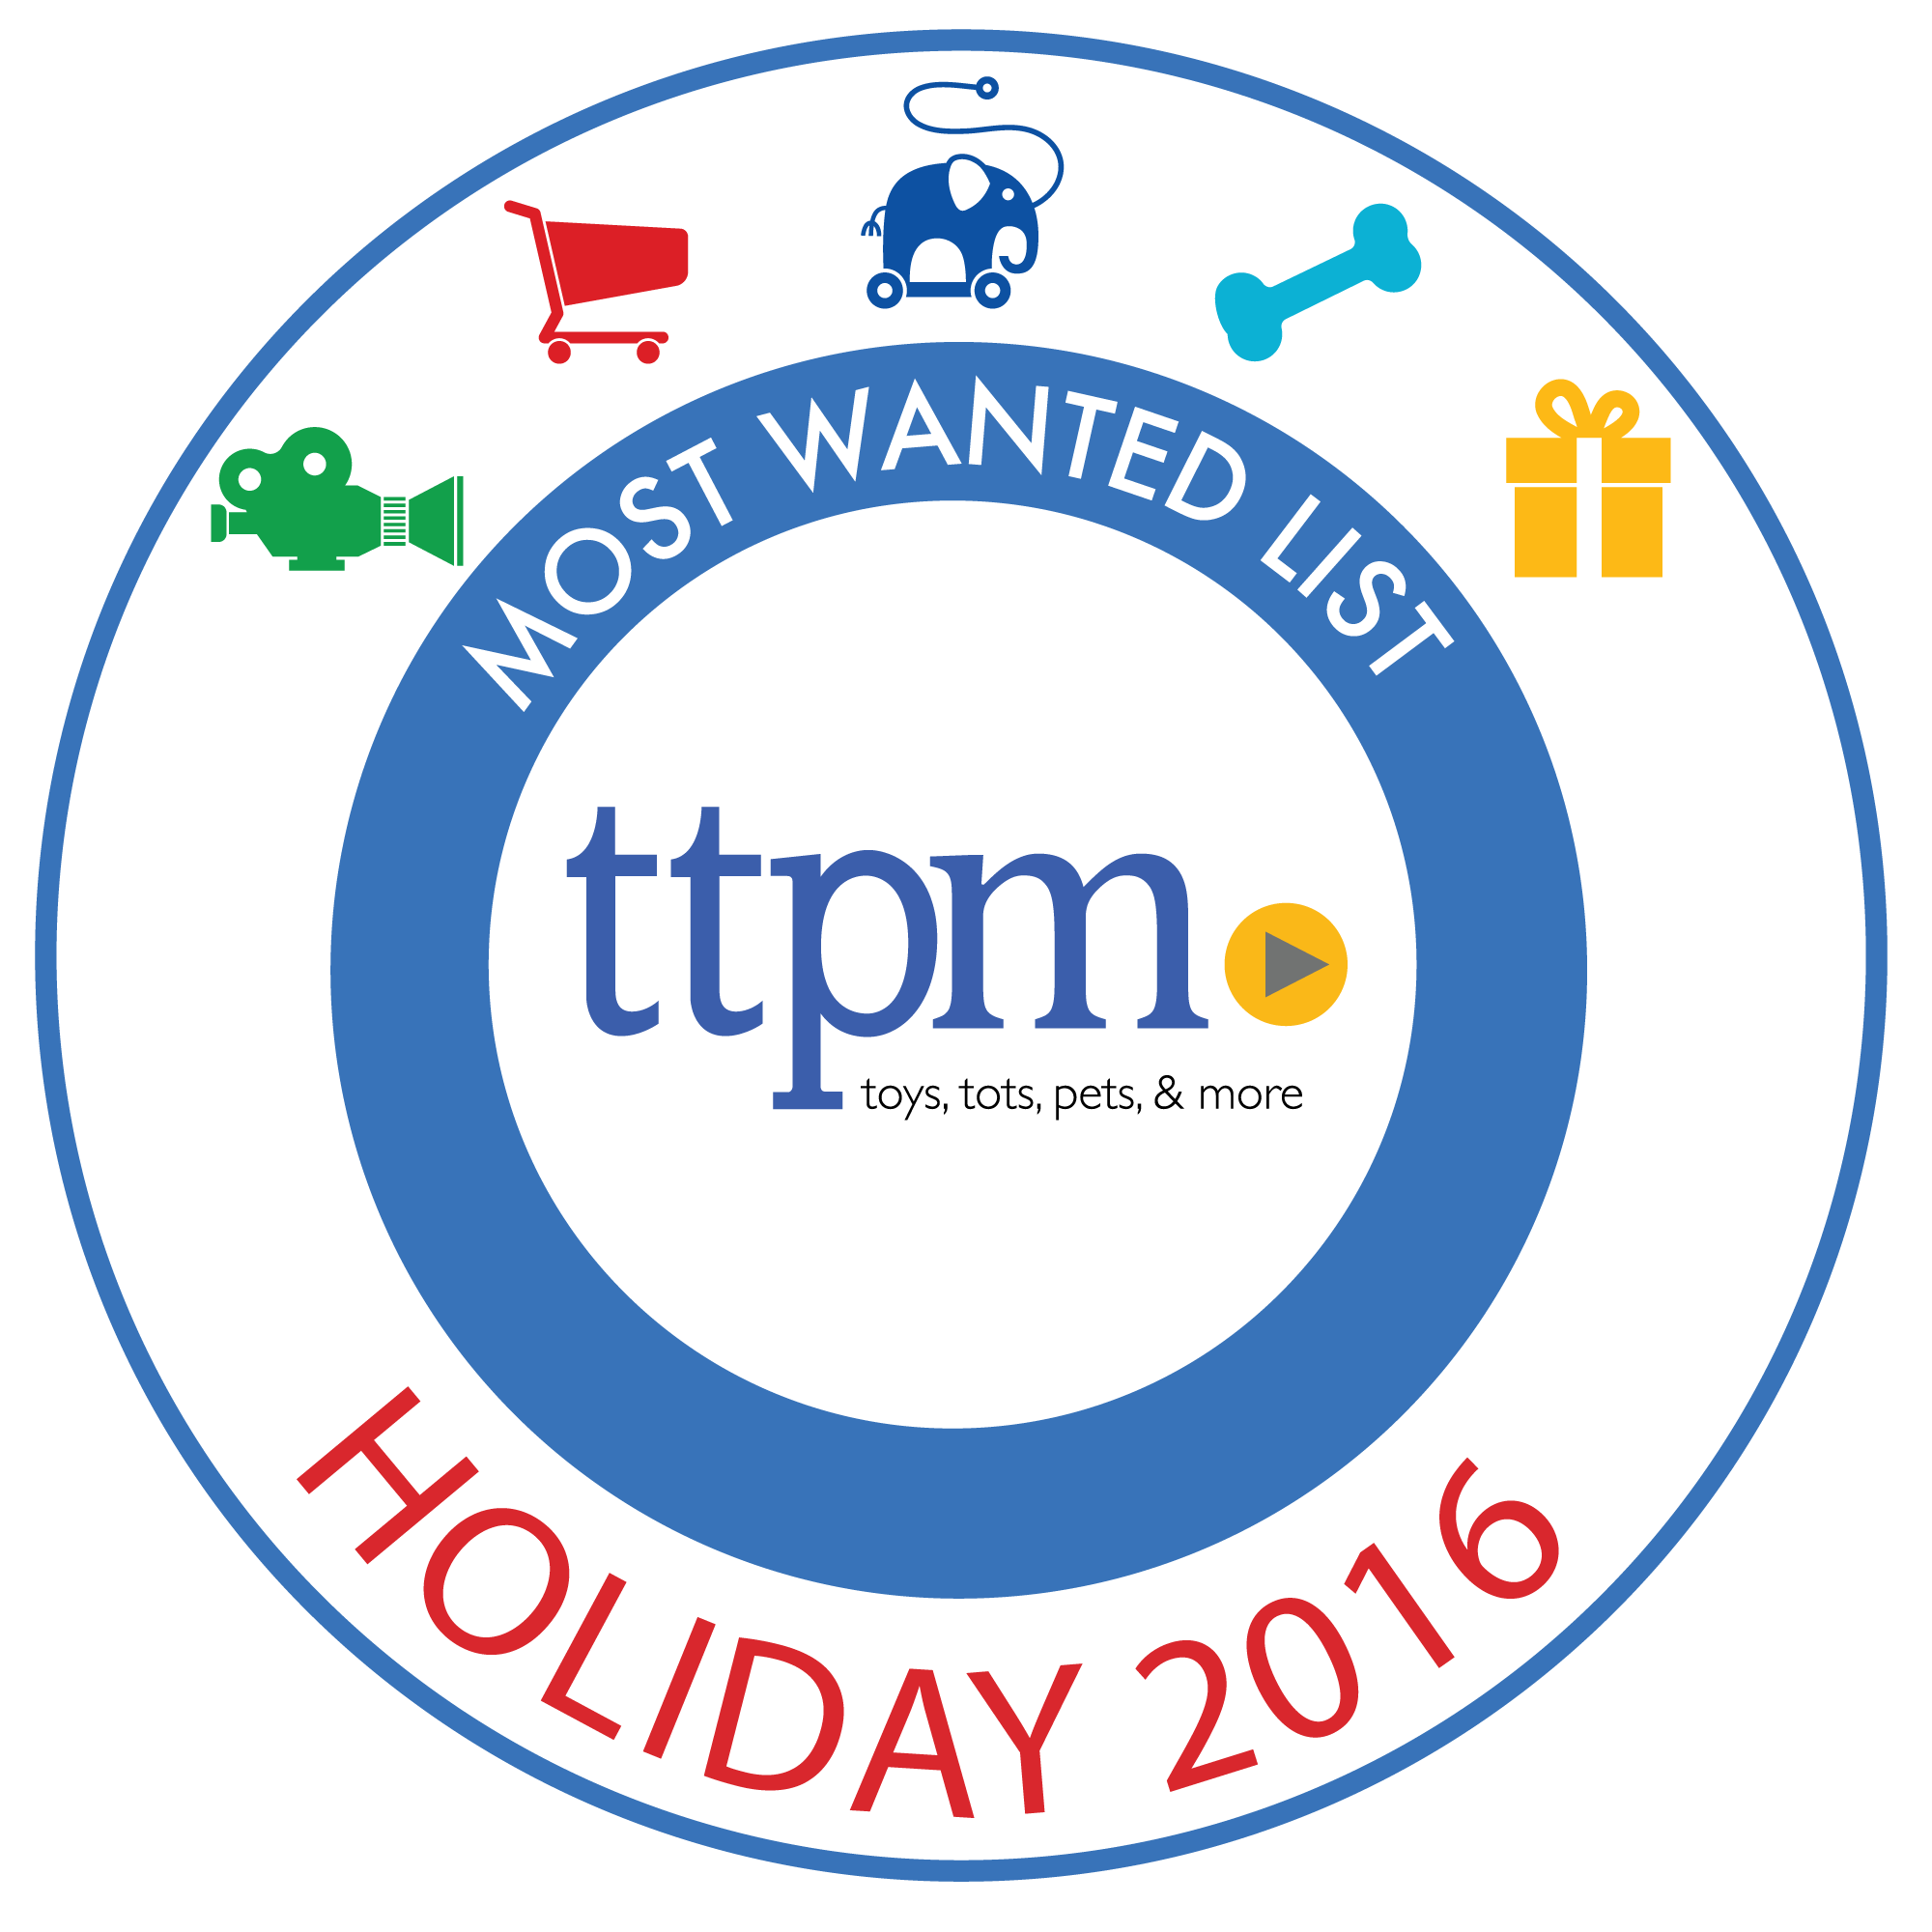 most-wanted-holiday-2016-largescale.png